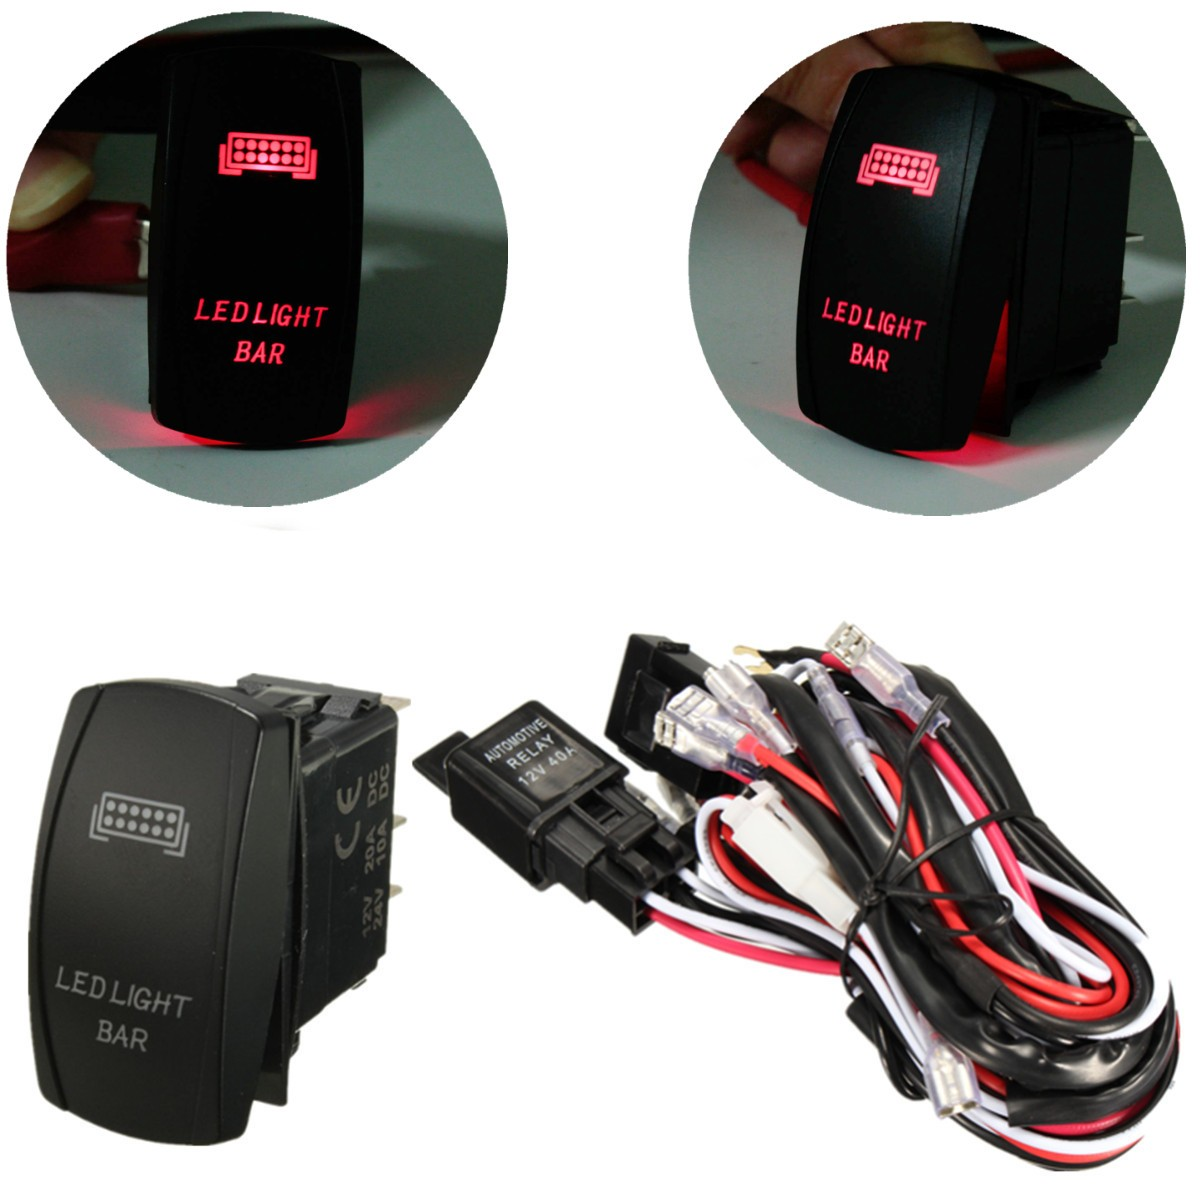 New 12V LED Light Bar Laser Rocker On Off Switch Wiring Harness 40A font b Relay?resize\\\\\=1200%2C1200\\\\\&ssl\\\\\=1 mastercraft boat wiring diagram page 6 yondo tech on x9 mastercraft wiring diagram